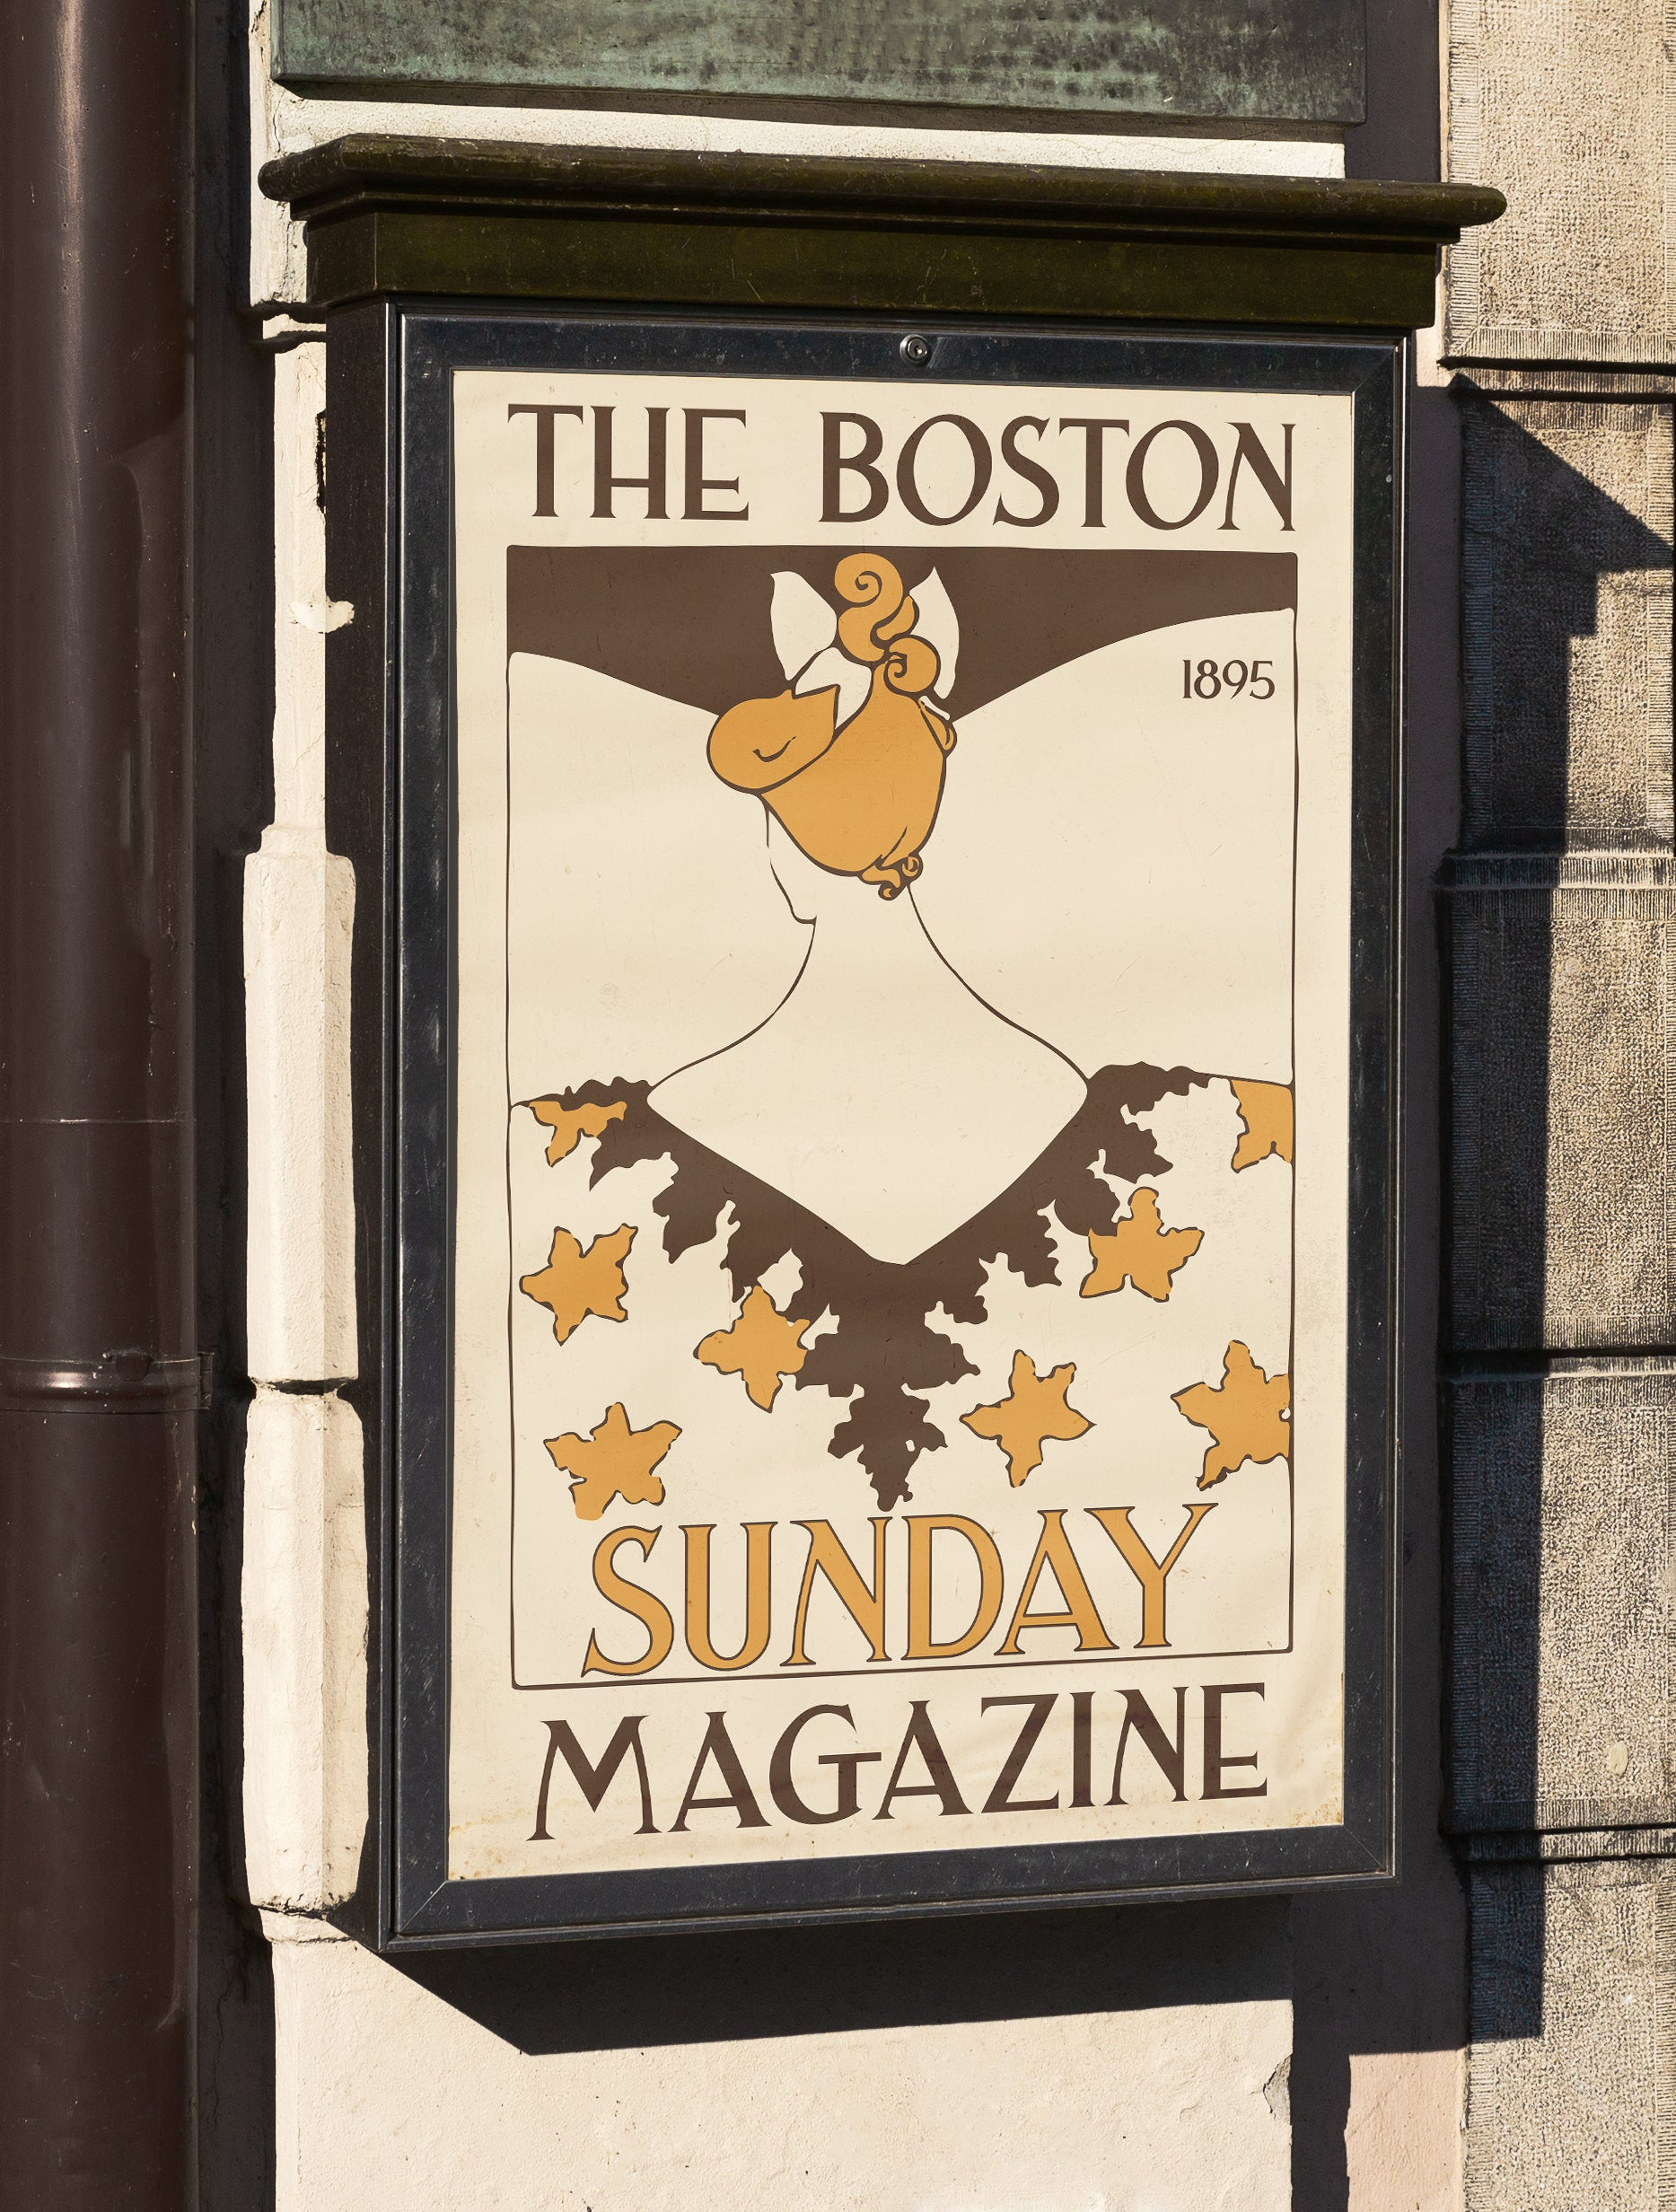 Sunday Magazine 1895 Poster